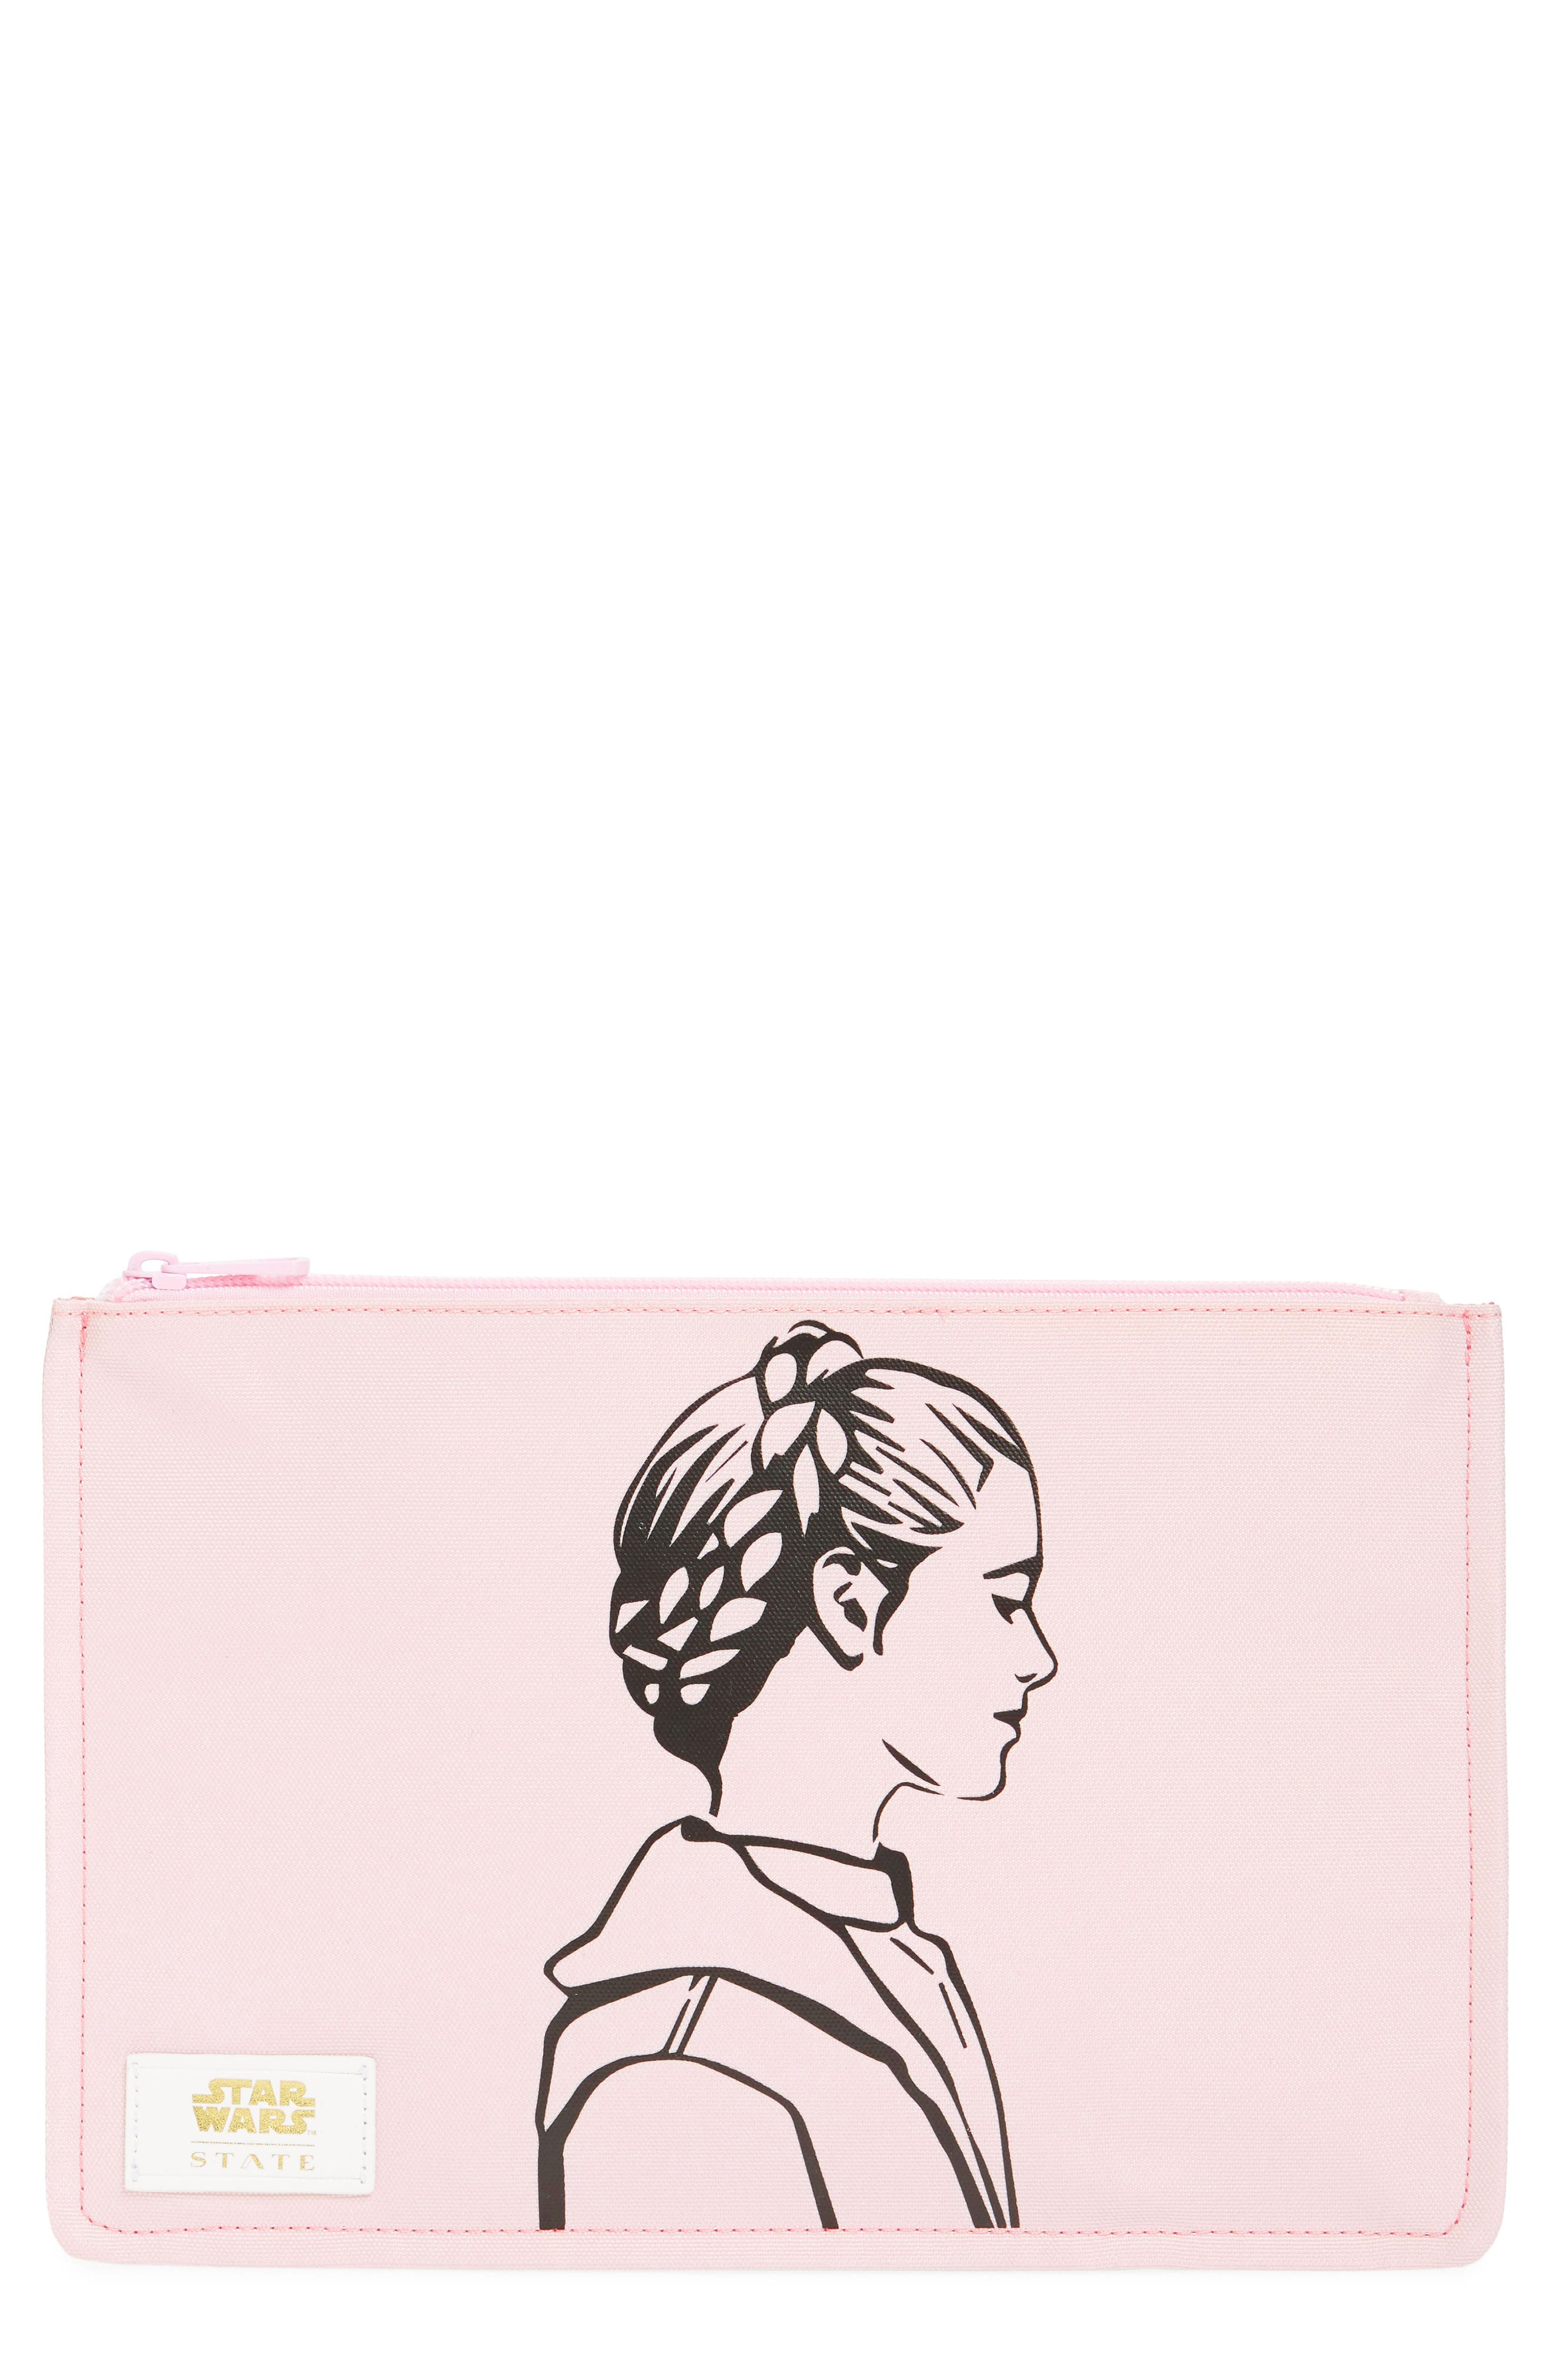 Alternate Image 1 Selected - STATE Bags Star Wars - Princess Leia Laurel Pouch